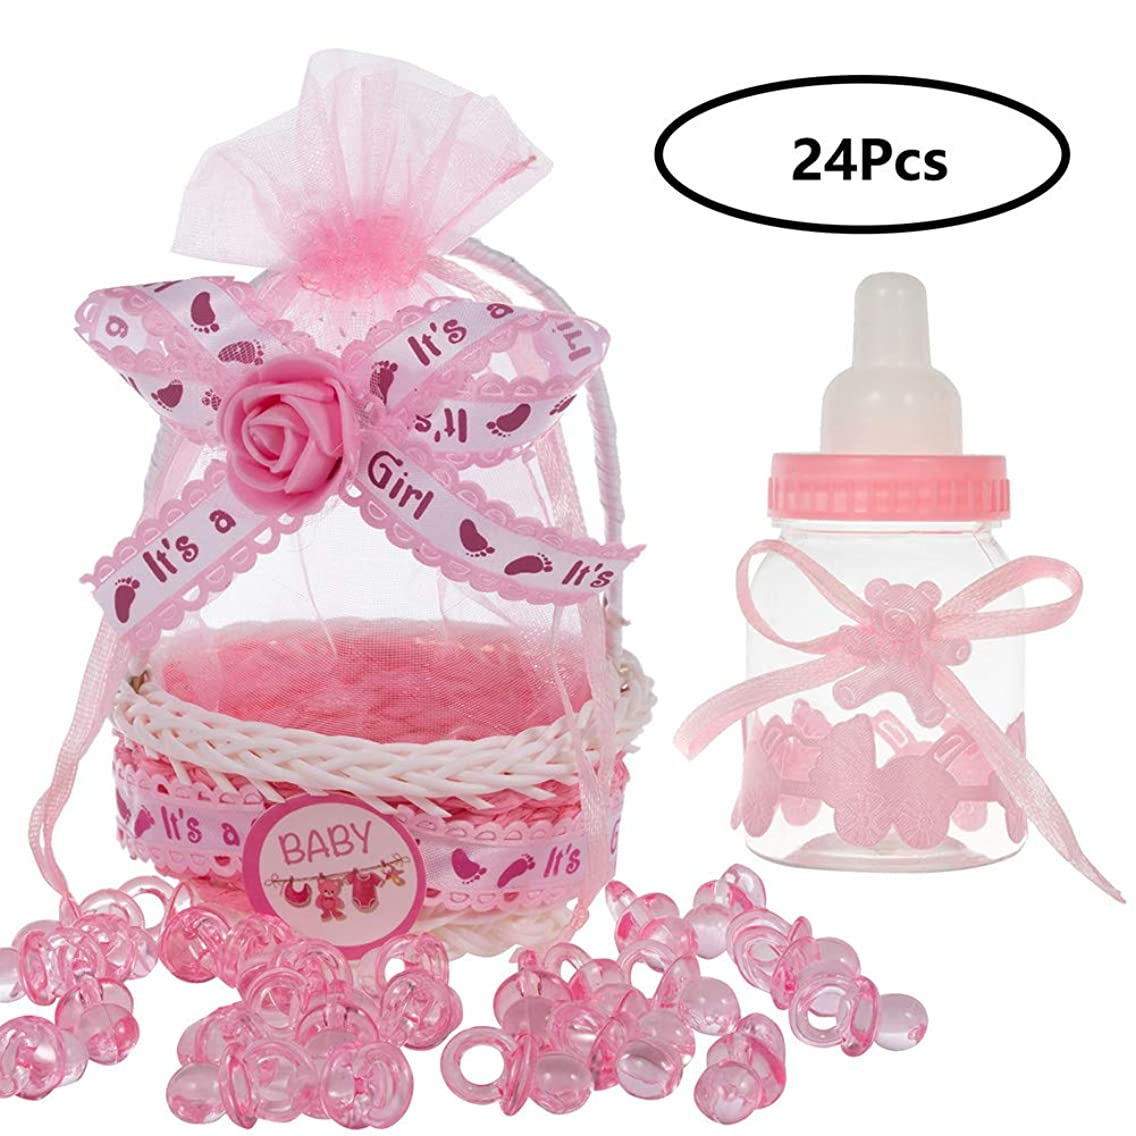 QILICHZ 24pcs Baby Shower Gift Bag Organza Baby Girl Candy Bags Baby Shower Bottles Baby Candy Bottle Gift Boxes Candy Favor Boxes for Baby Girl Shower and Wedding Party Decor